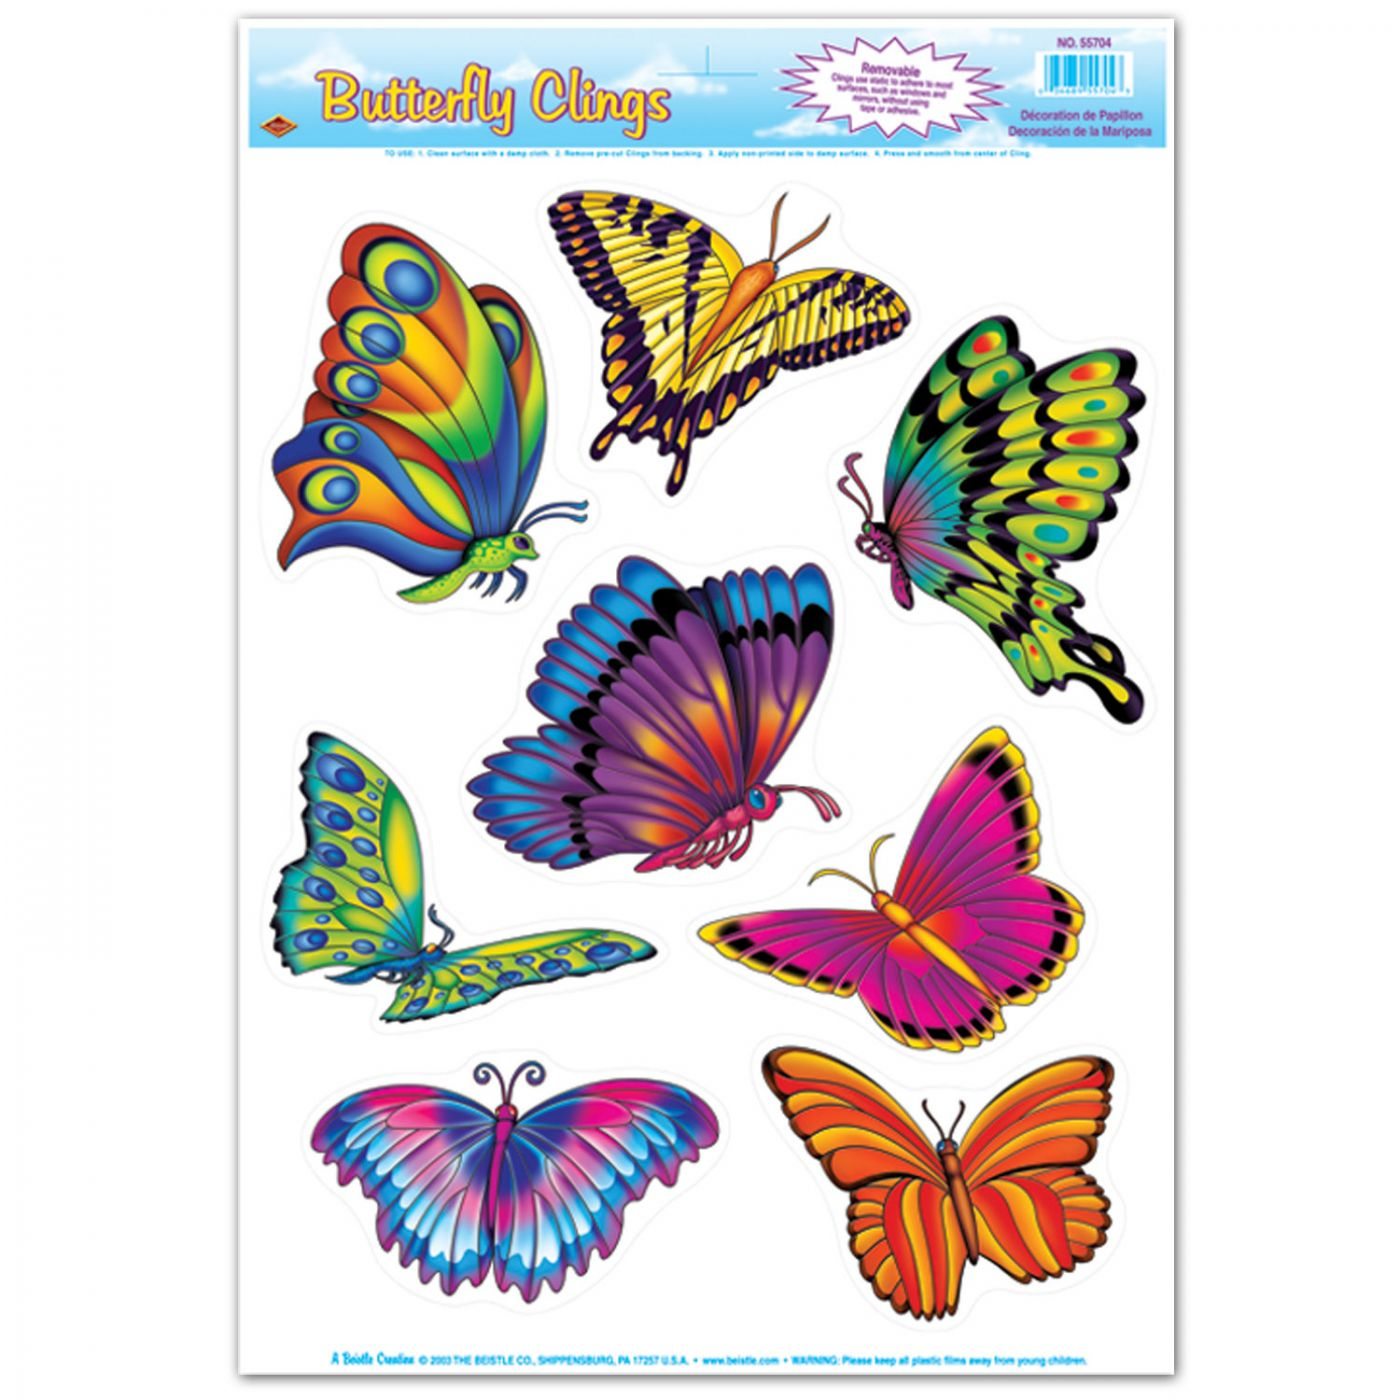 Image of Butterfly Clings